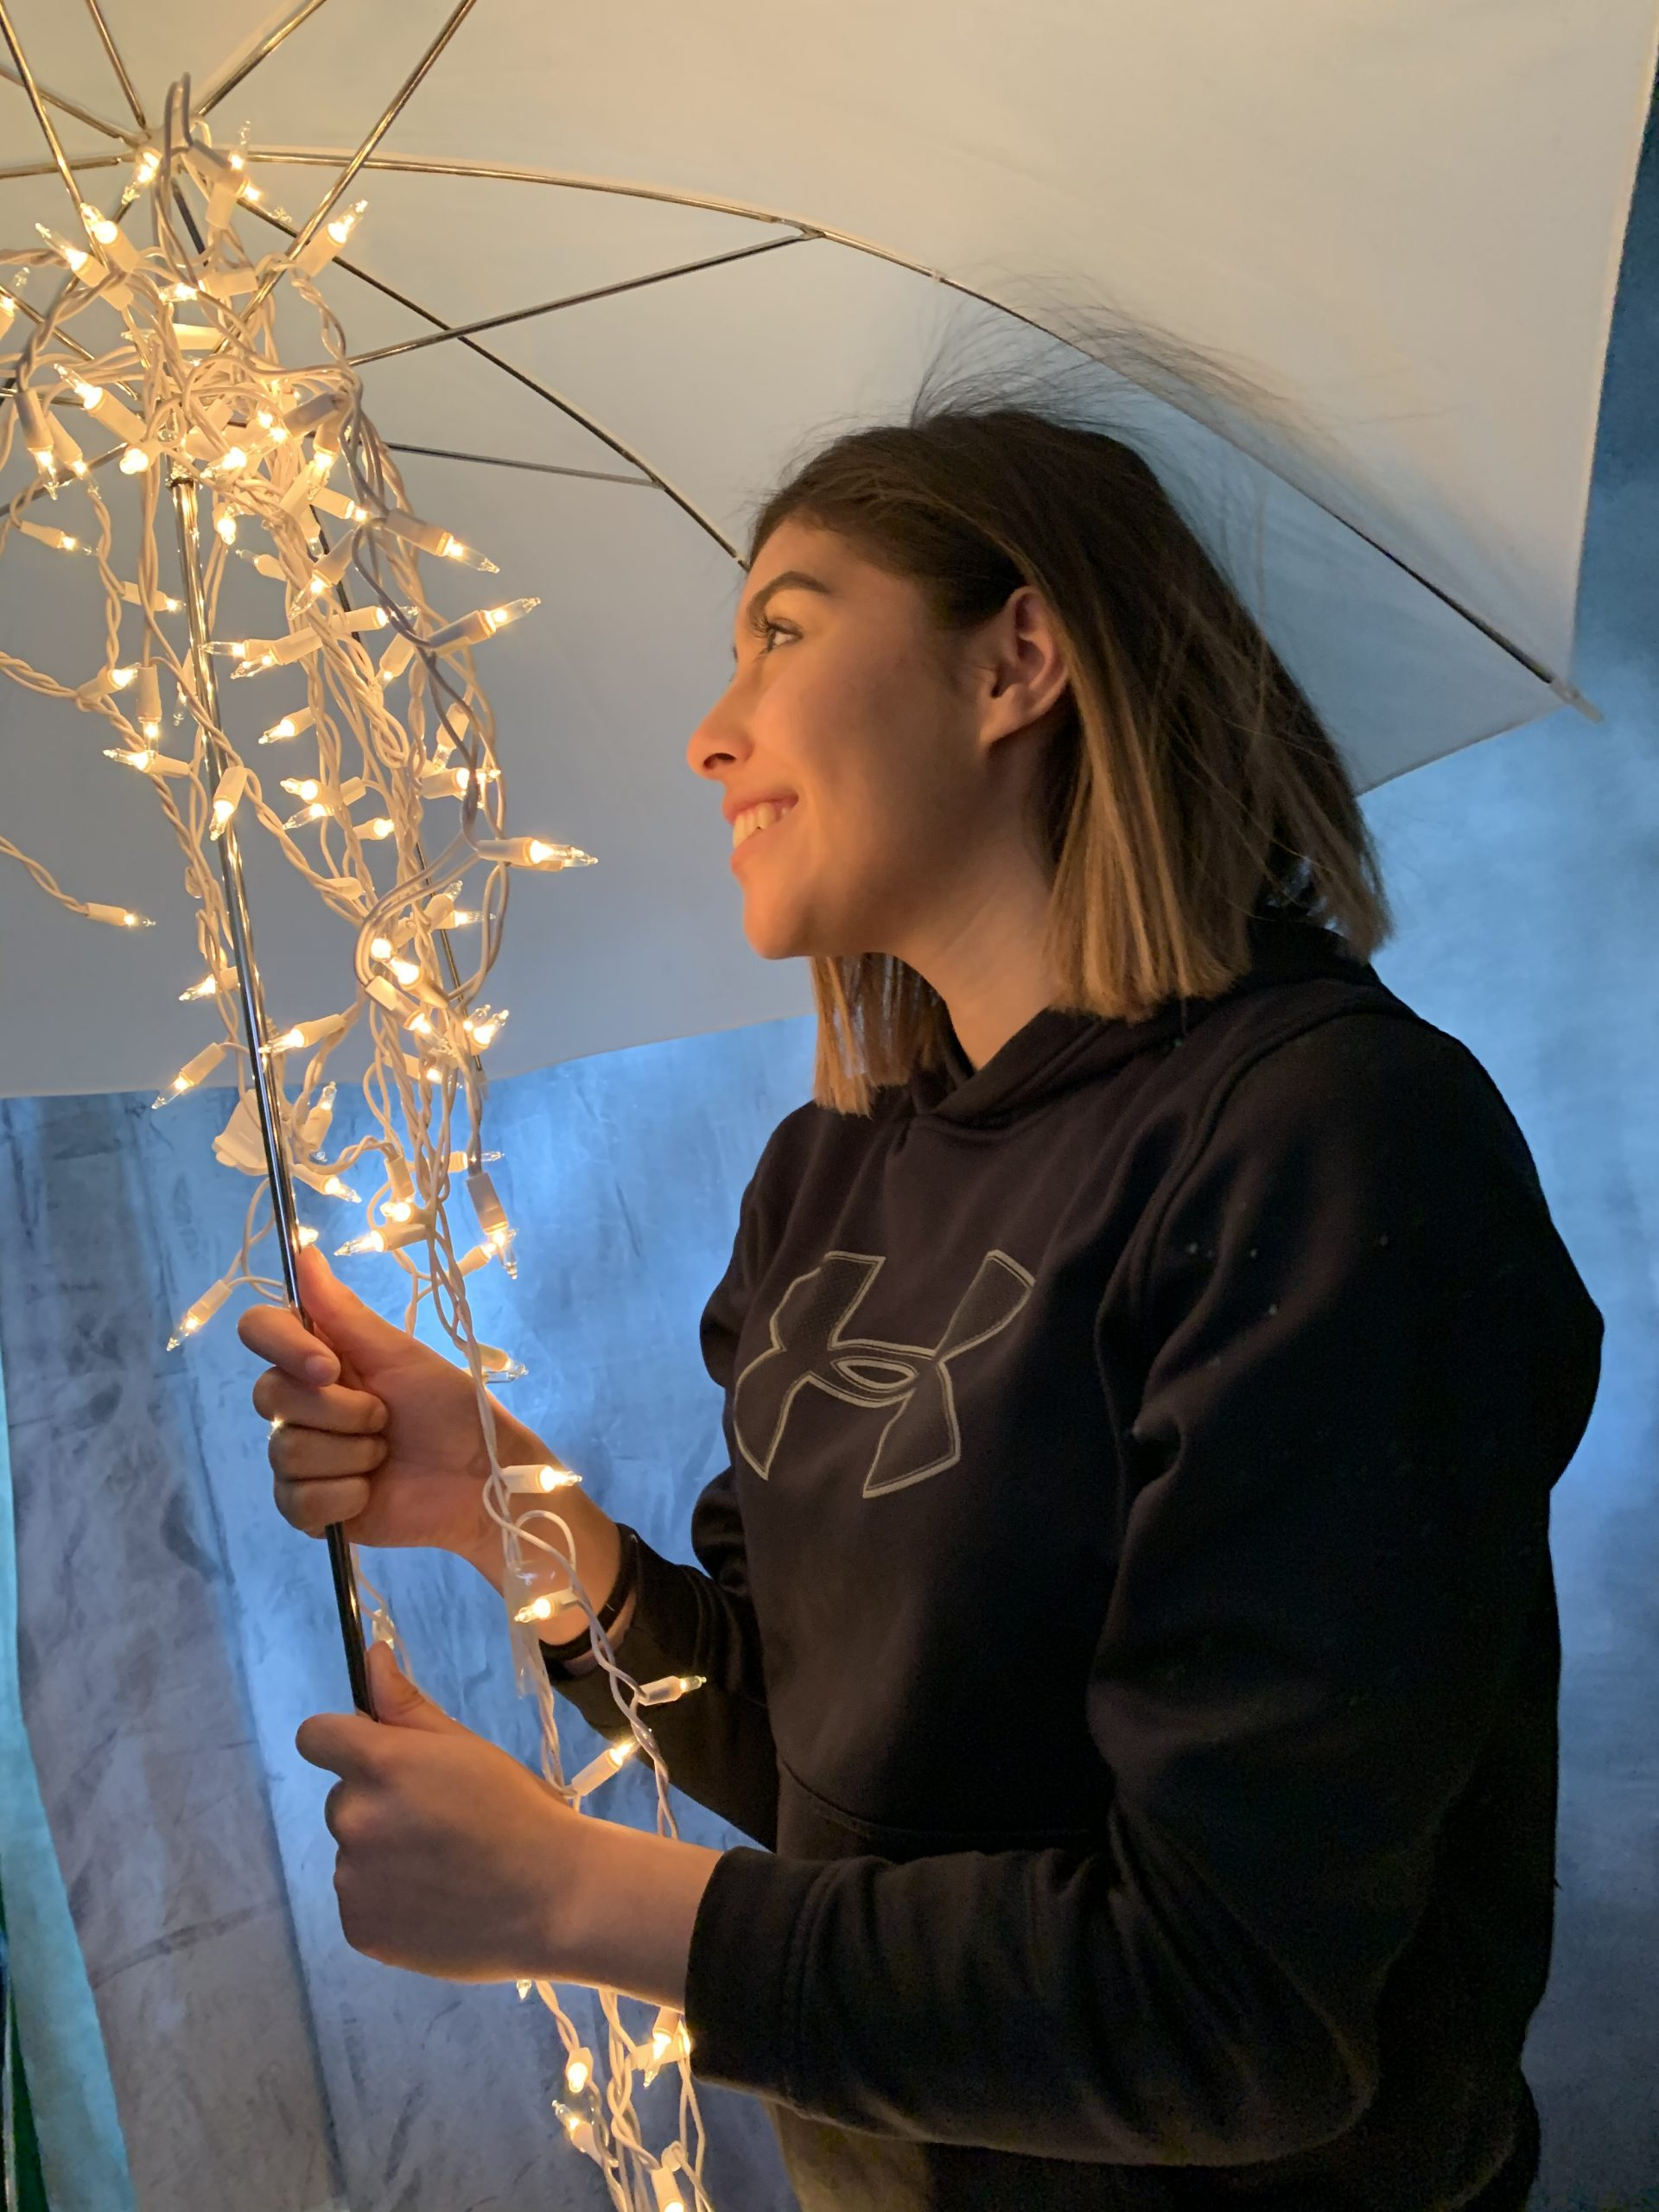 girl holding an umbrella with falling lights